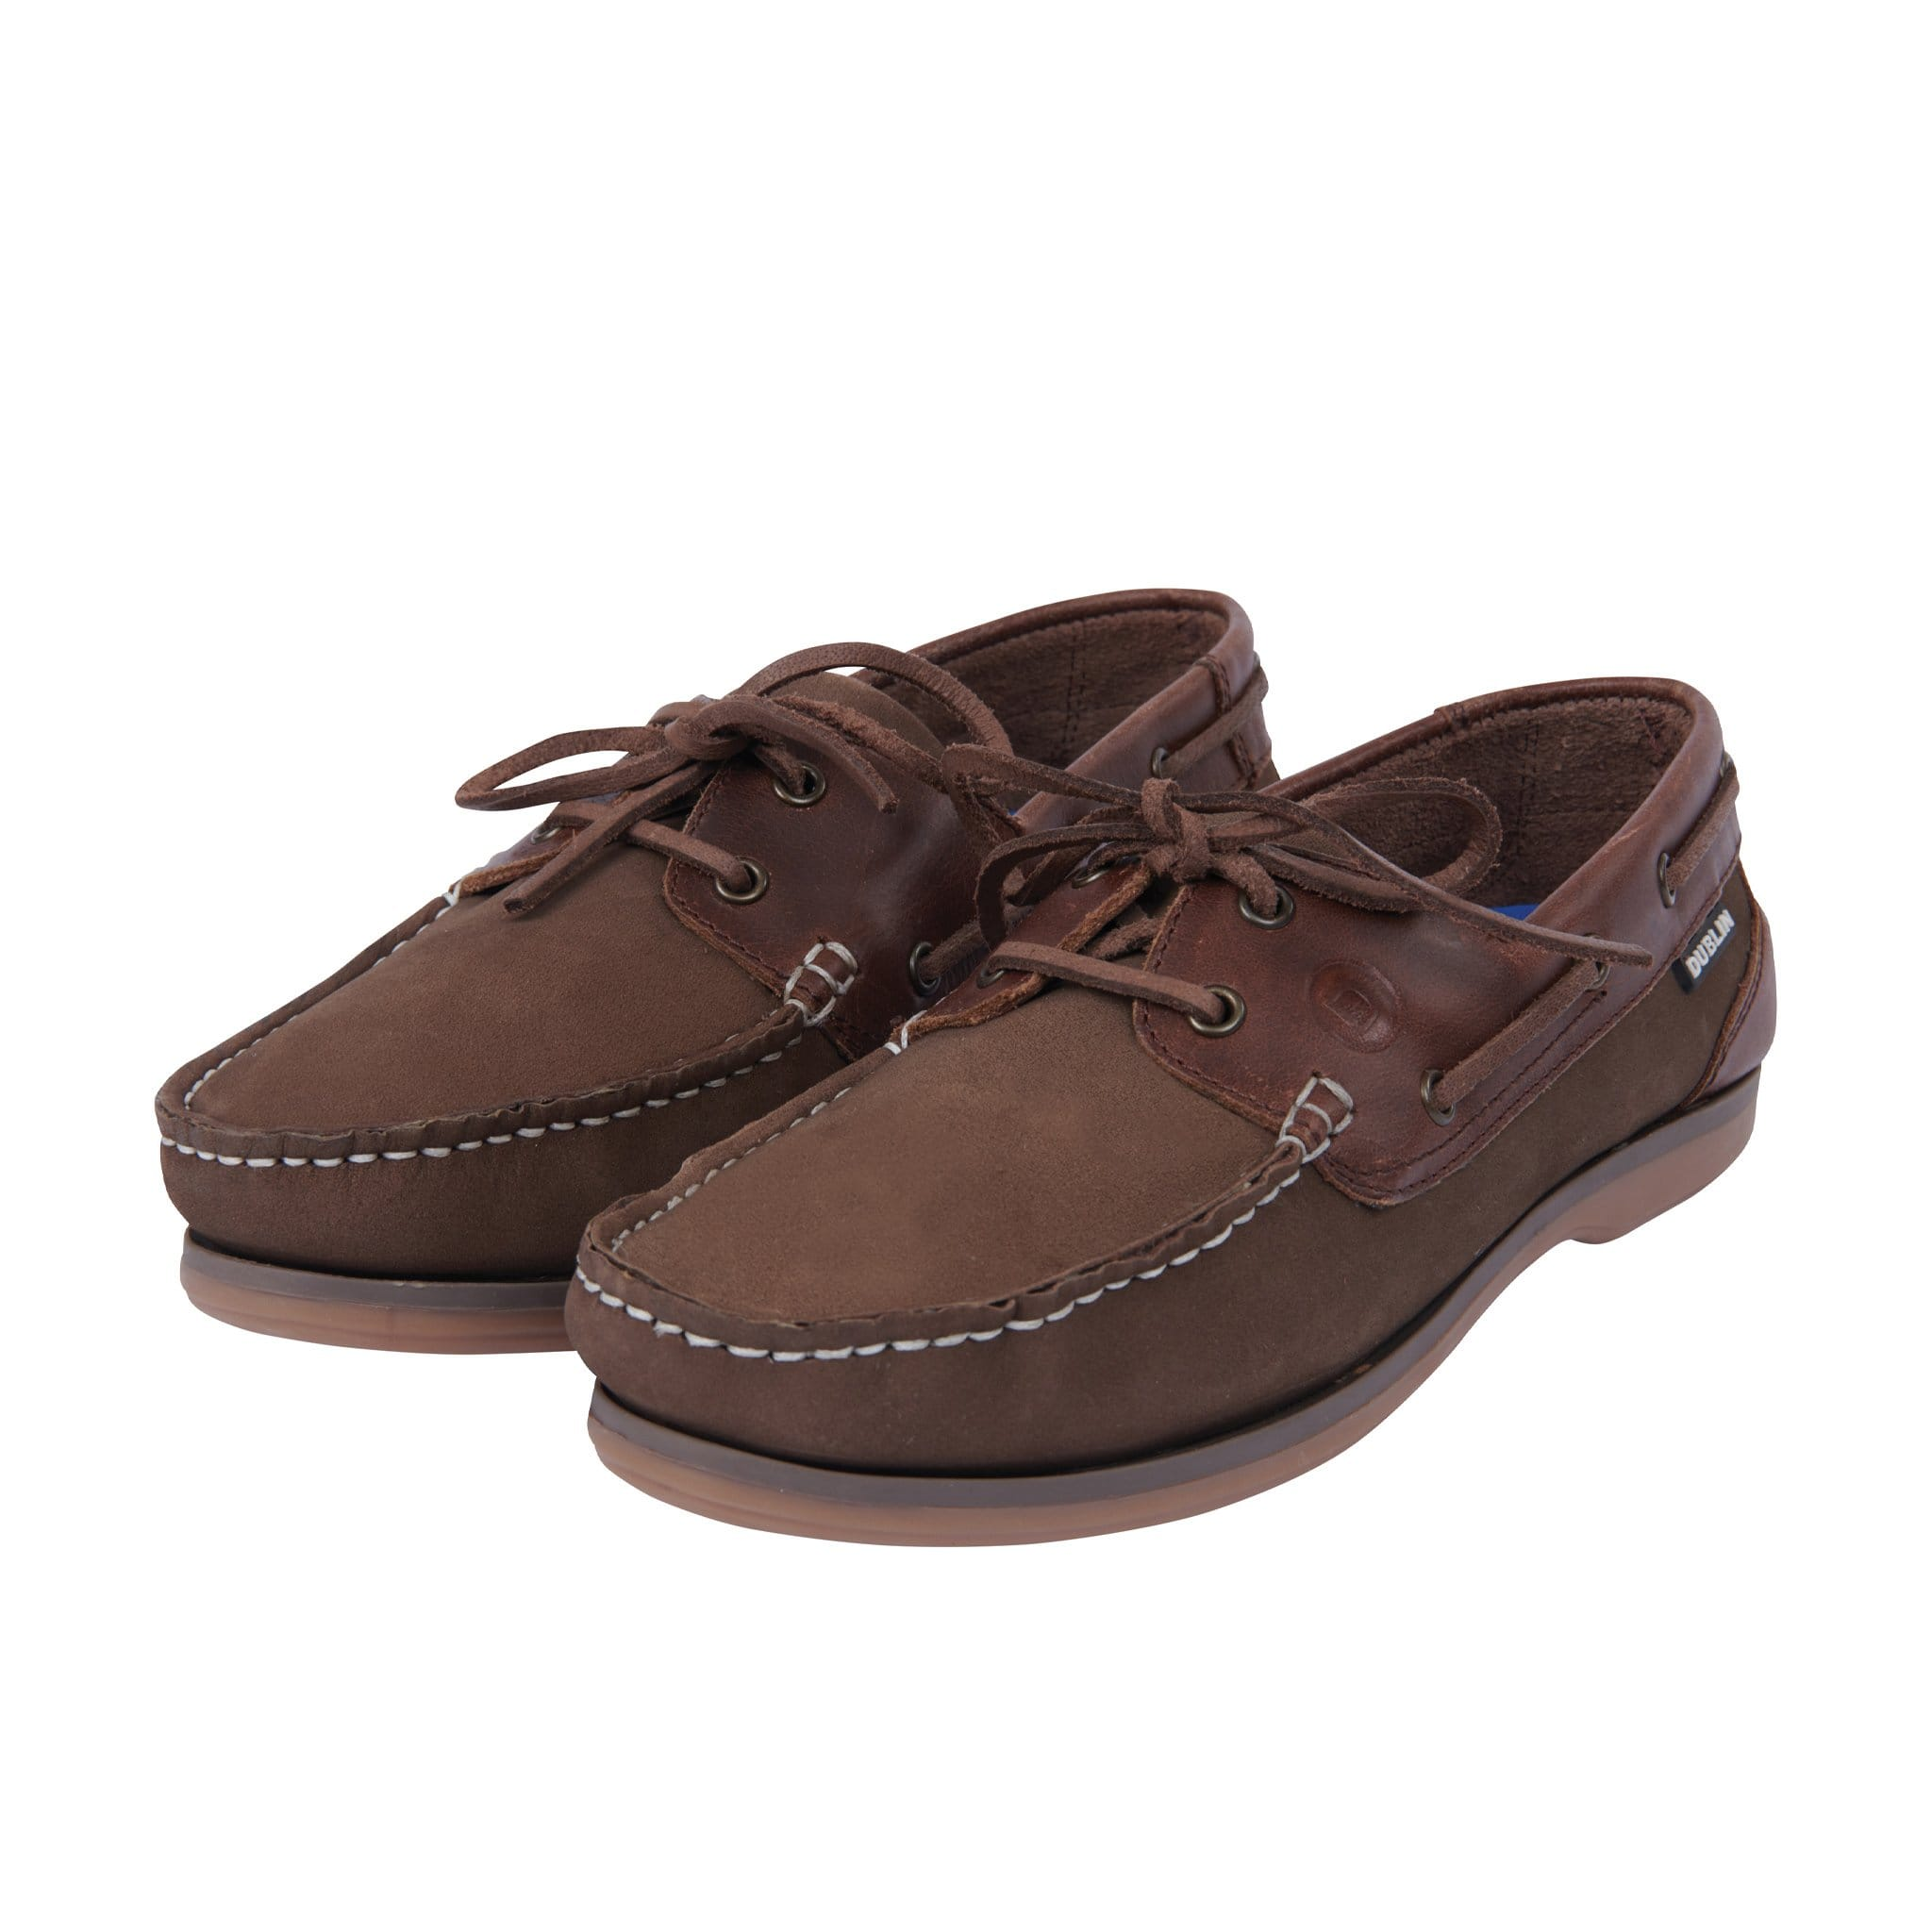 Dublin Broadland Arena Shoes Chesnut Brown Front